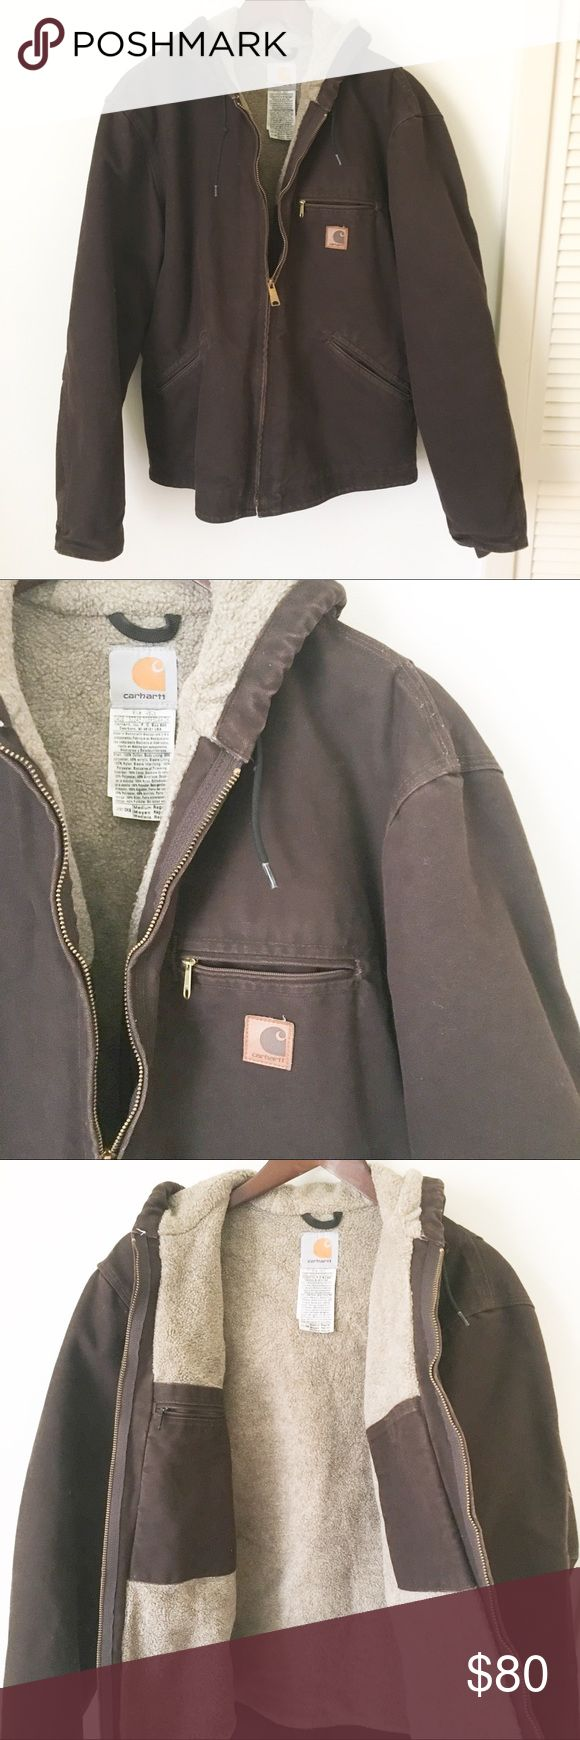 Carhartt Sherpa Lined Winter Jacket Great shape! Gently worn, minimal signs of wear, if any. Used for one winter season, no longer fits. Great winter jacket. Heavy duty. Quality Carhartt materials. Classic brown. Carhartt Jackets & Coats